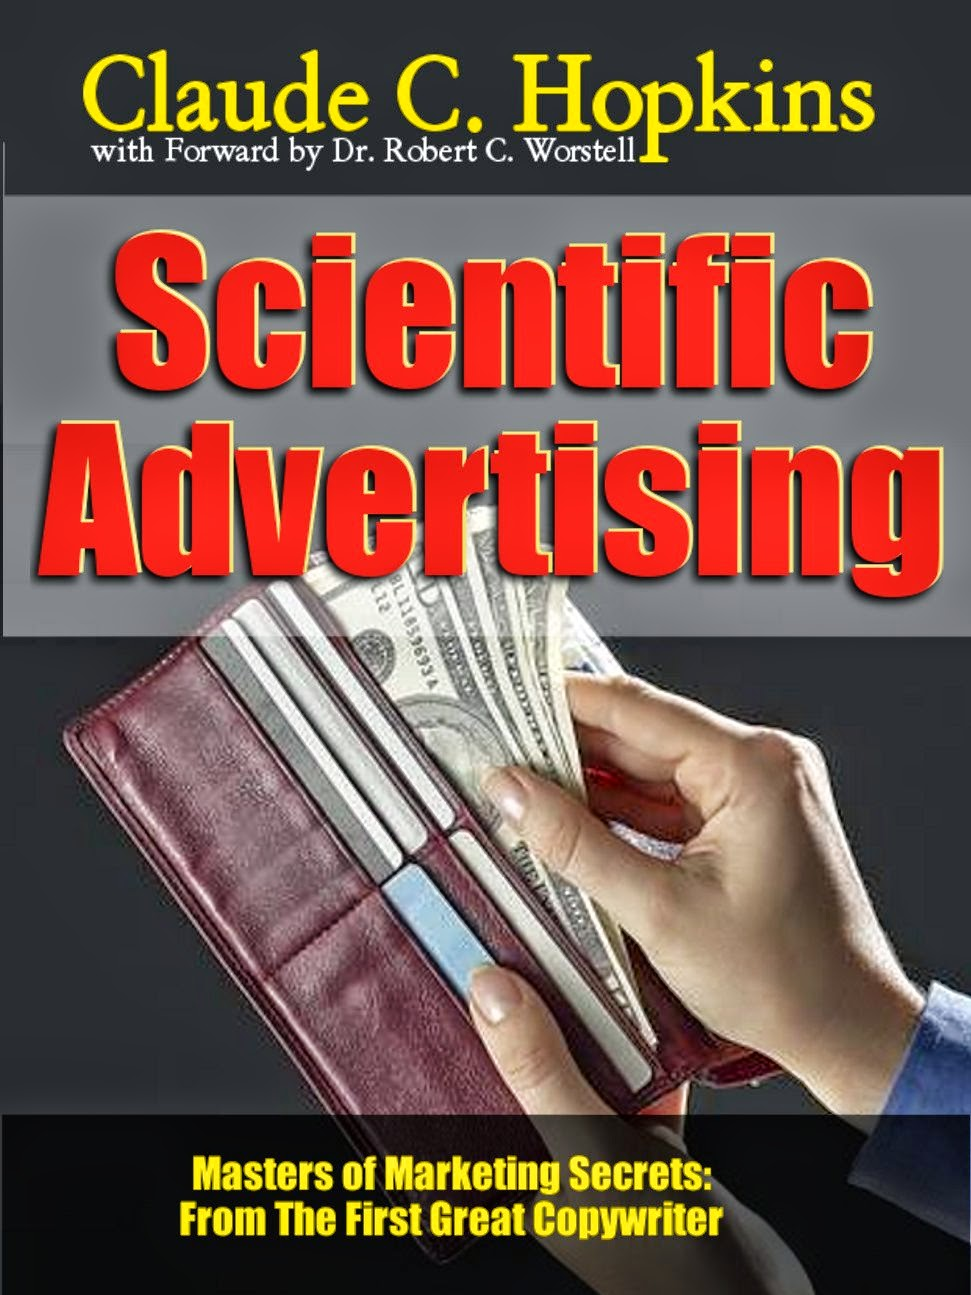 Claude Hopkins Scientific Advertising - new ebook version